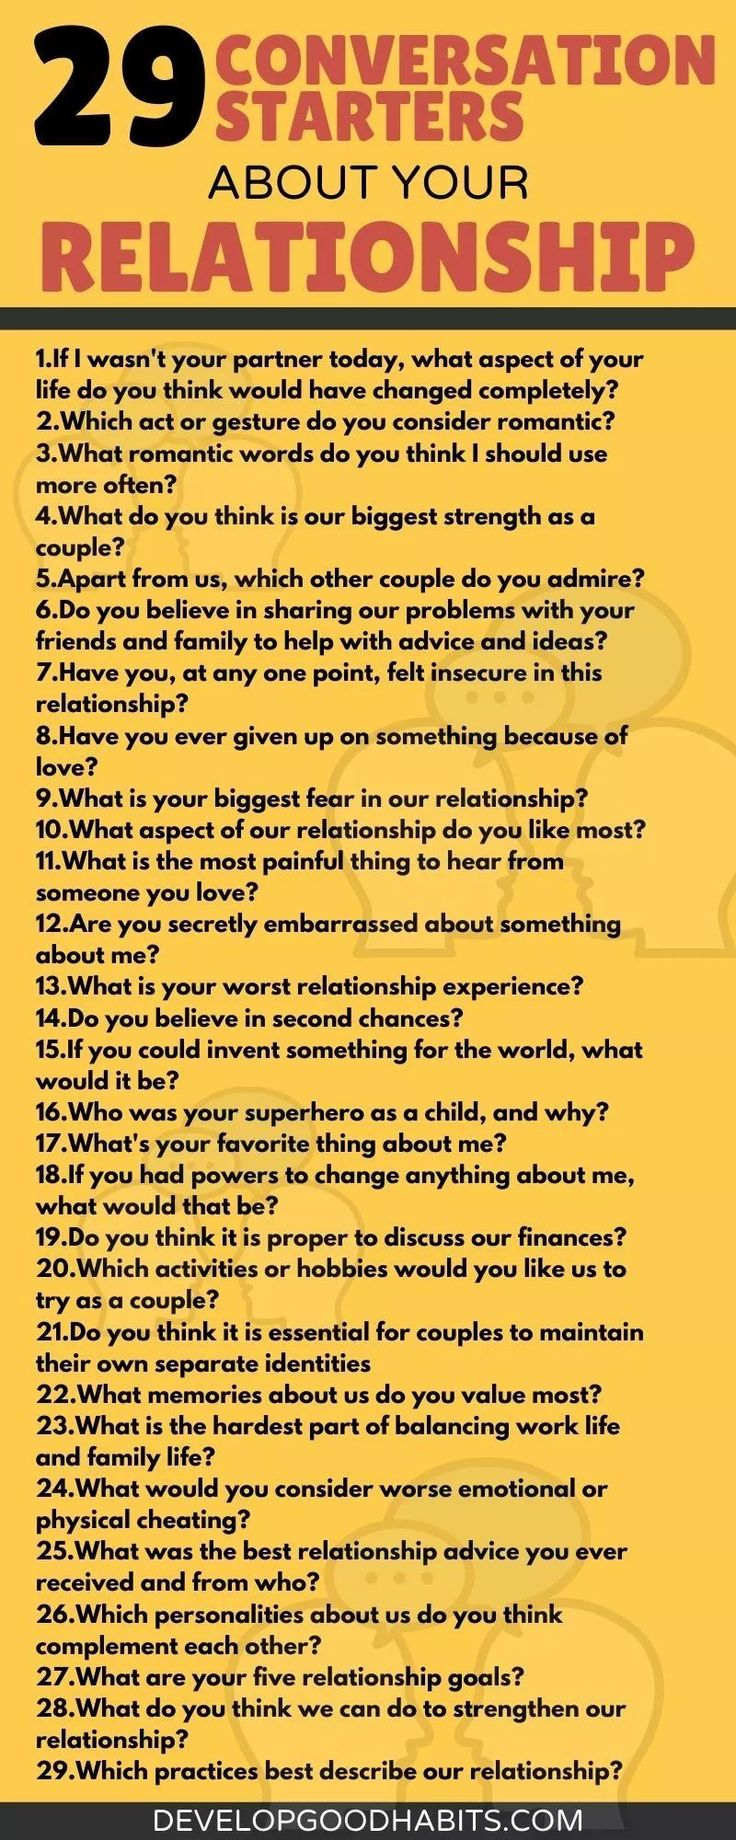 137 Conversation Starters & Questions for Couples